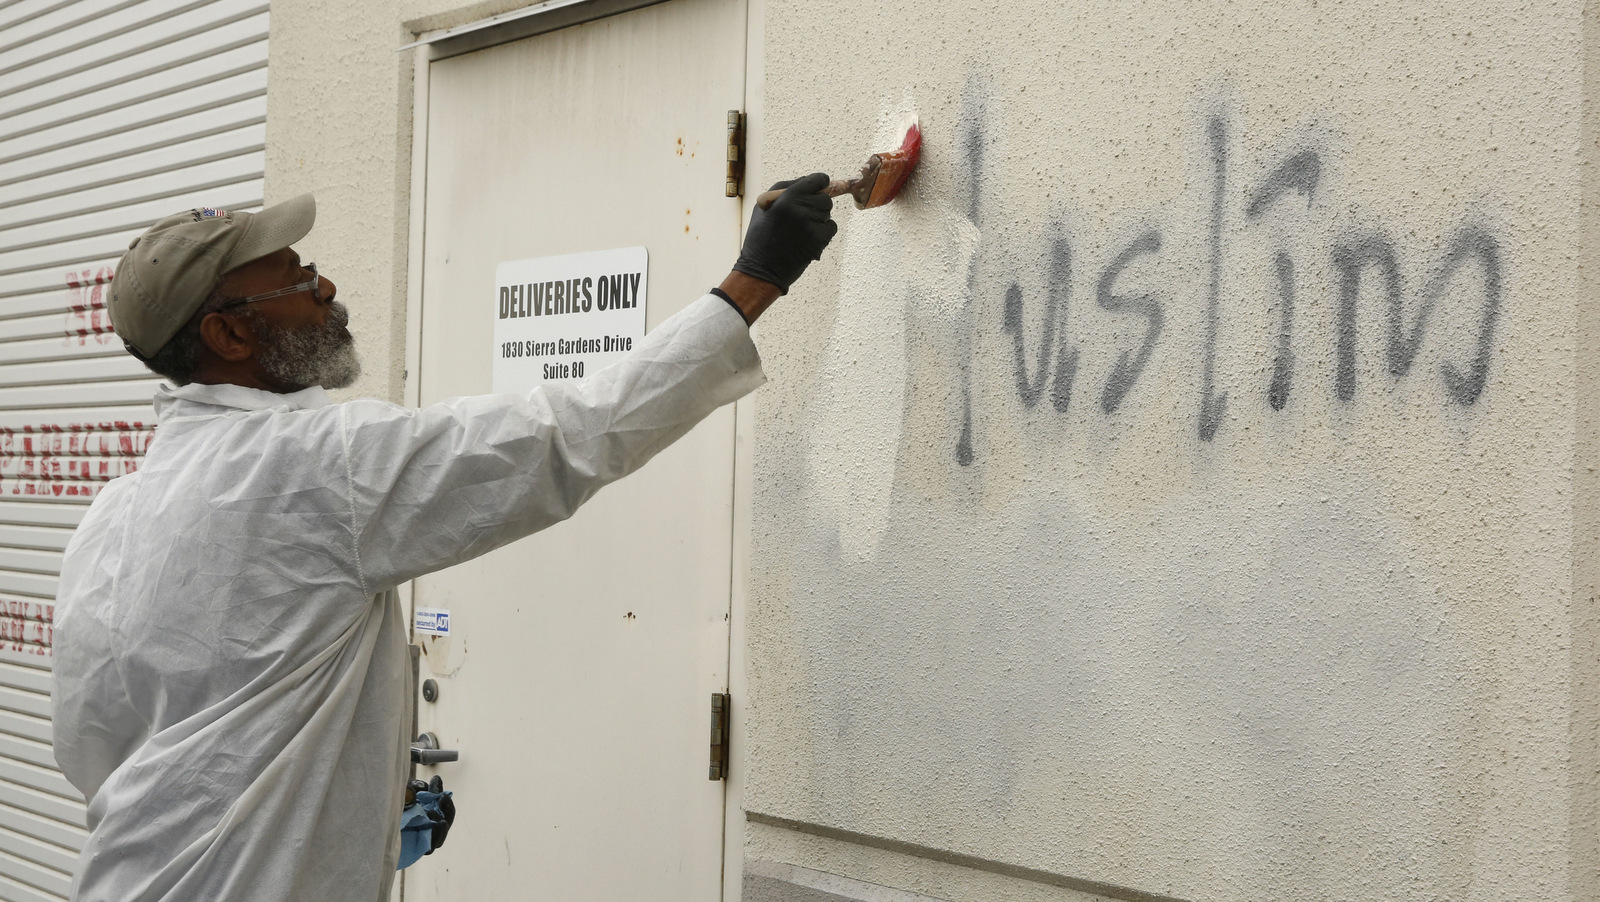 Willie Lawson paints over racist graffiti painted on the side of a mosque in Roseville, Calif. (AP/Rich Pedroncelli)